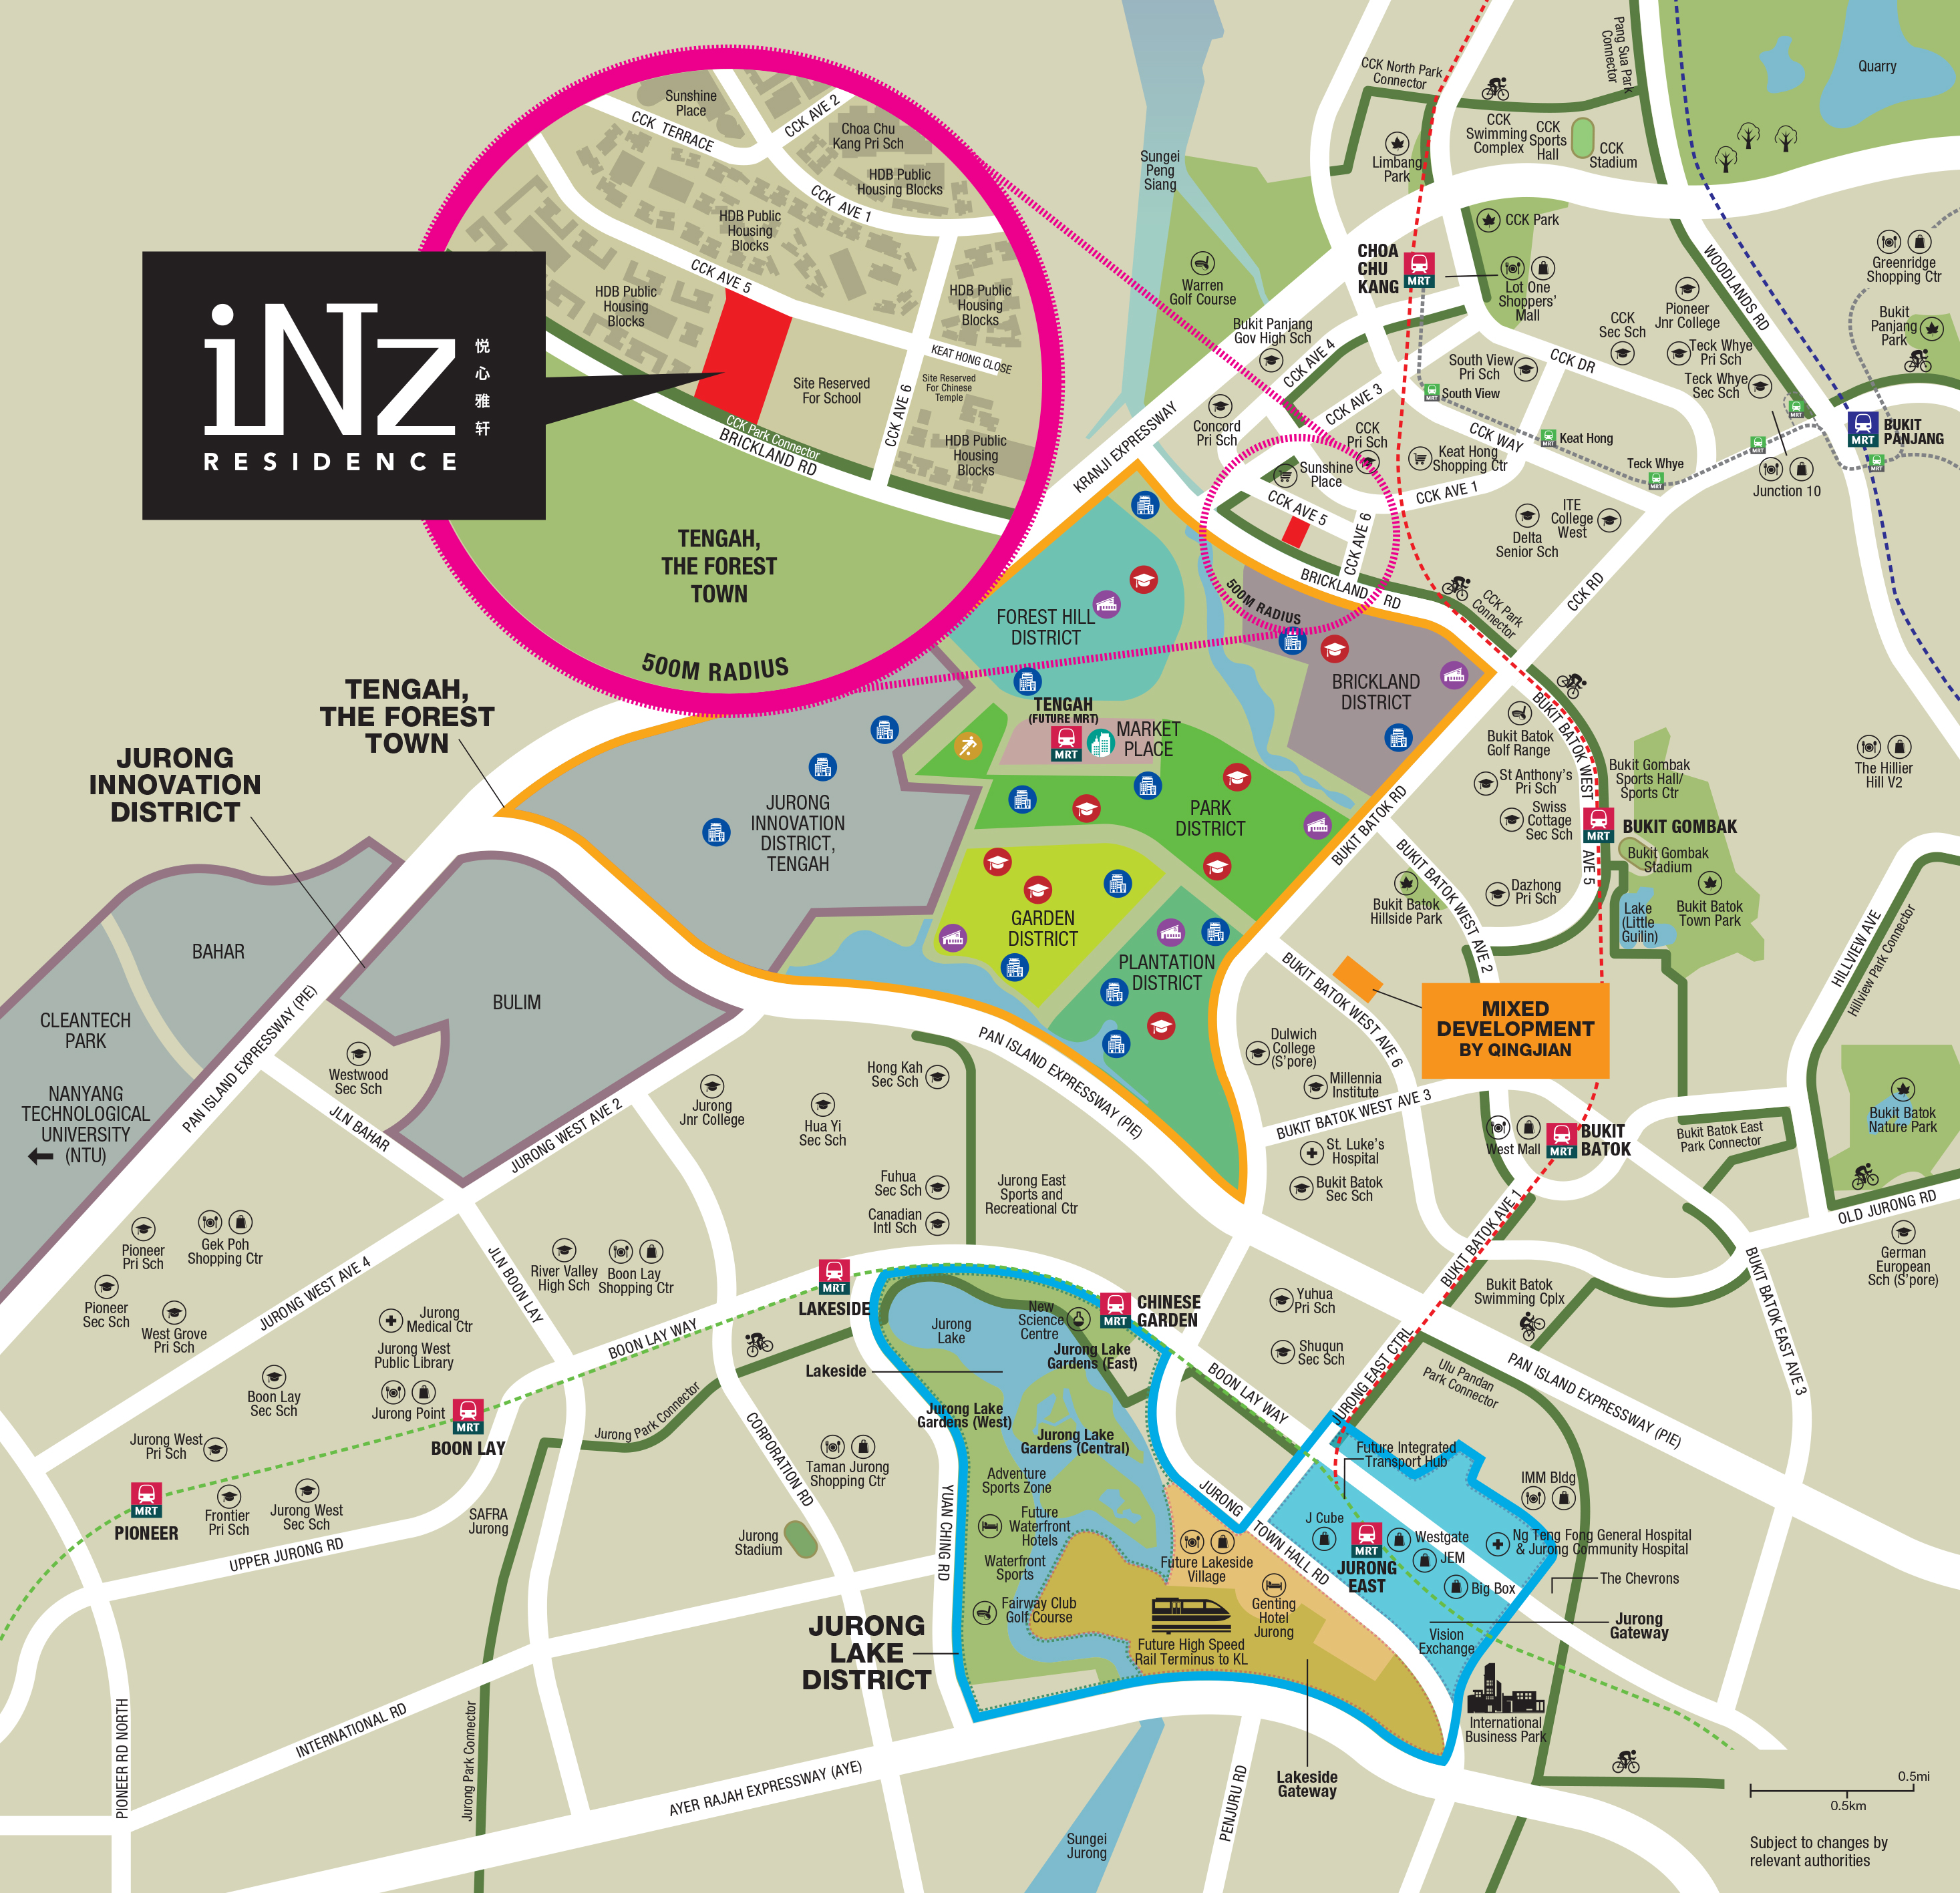 iNZ Location